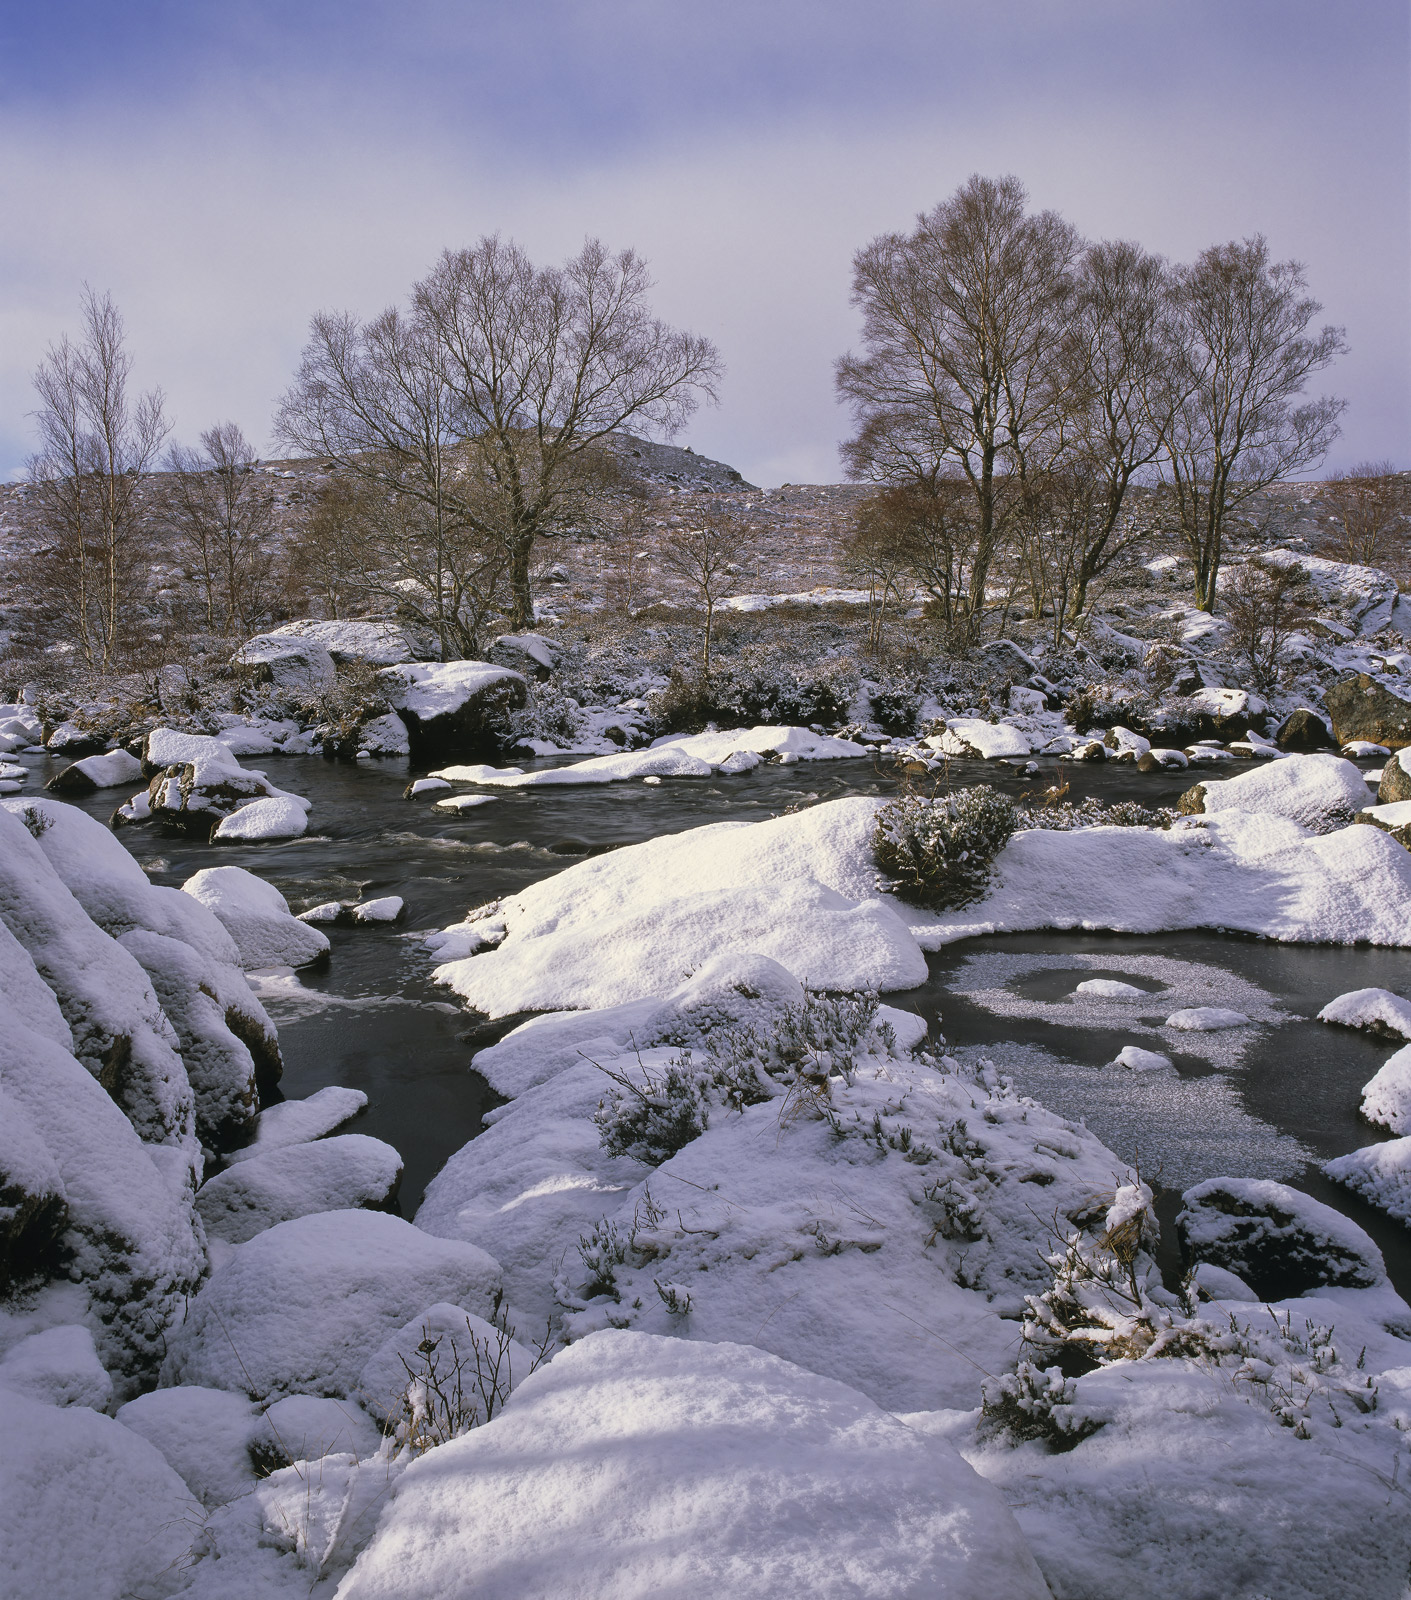 Flowing from the dam at Loch Glascarnoch is a river that gathers speed and girth as it tumbles its way from the high moors below...